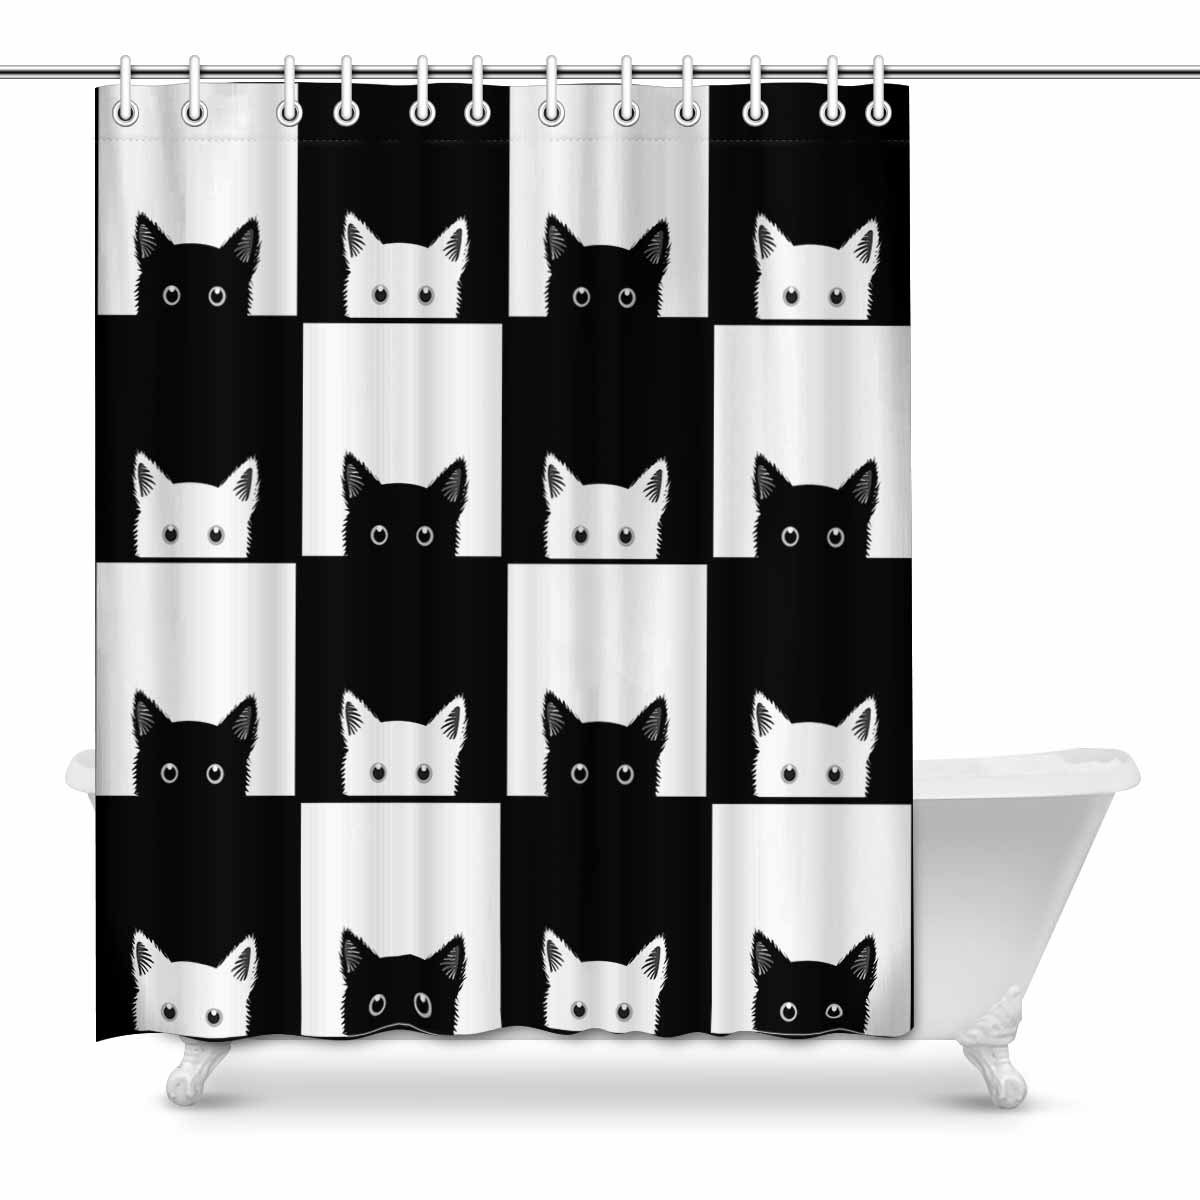 Shower Curtain Set 60x72 Inch